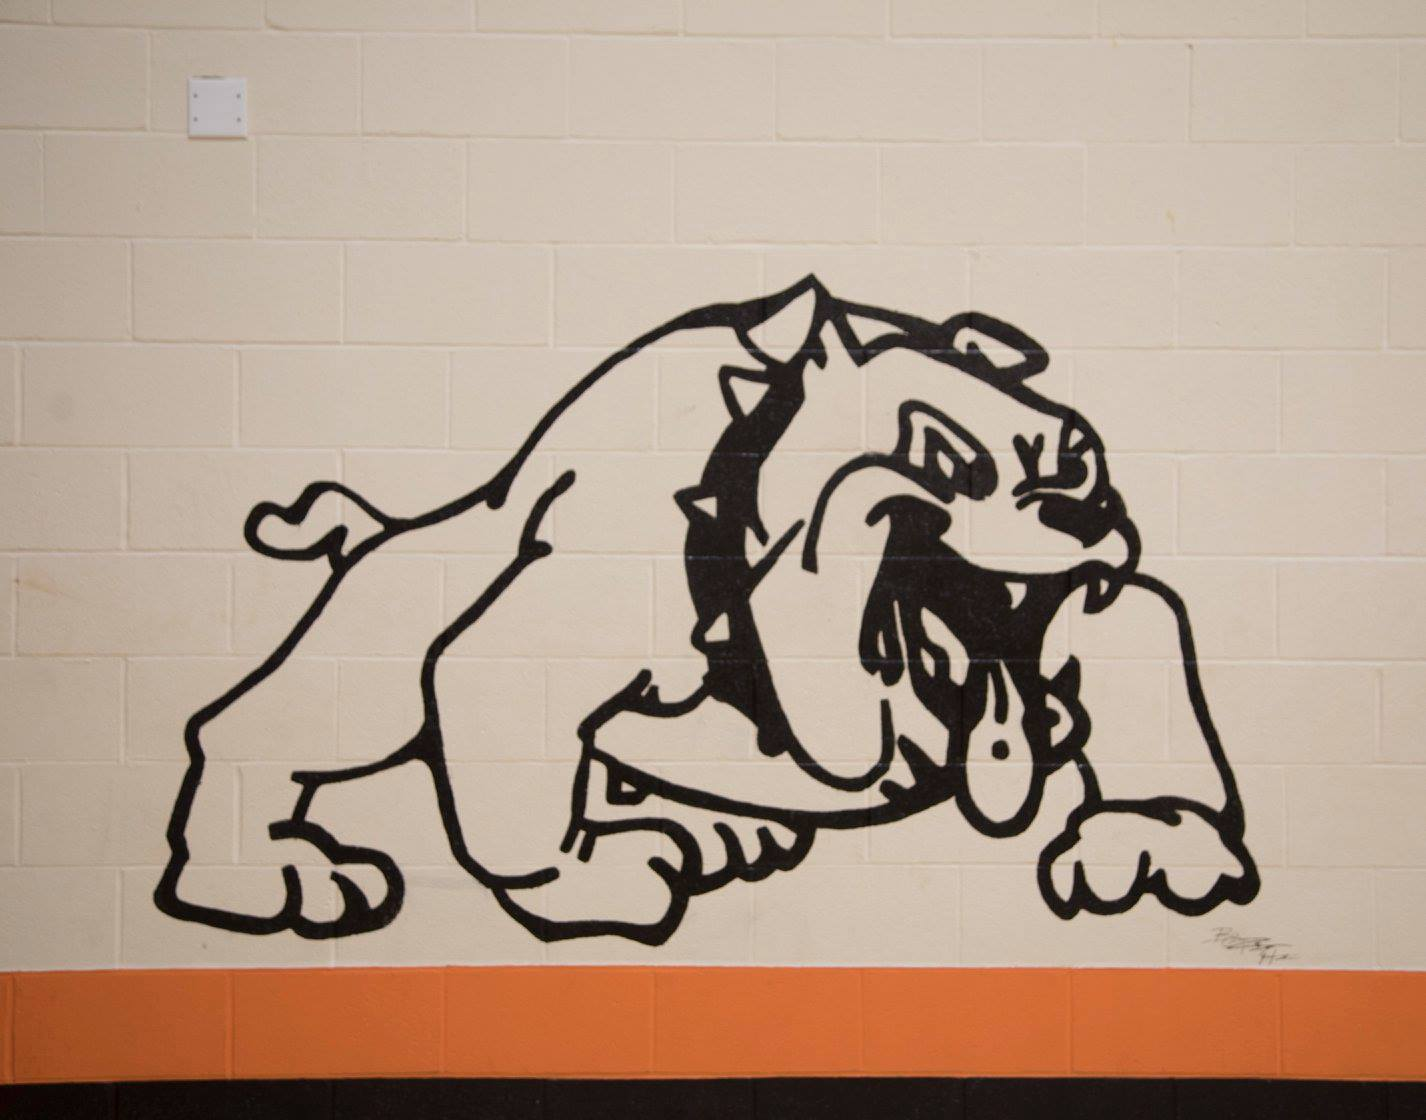 Bulldog logo mural in Homer Ray Gymnasium